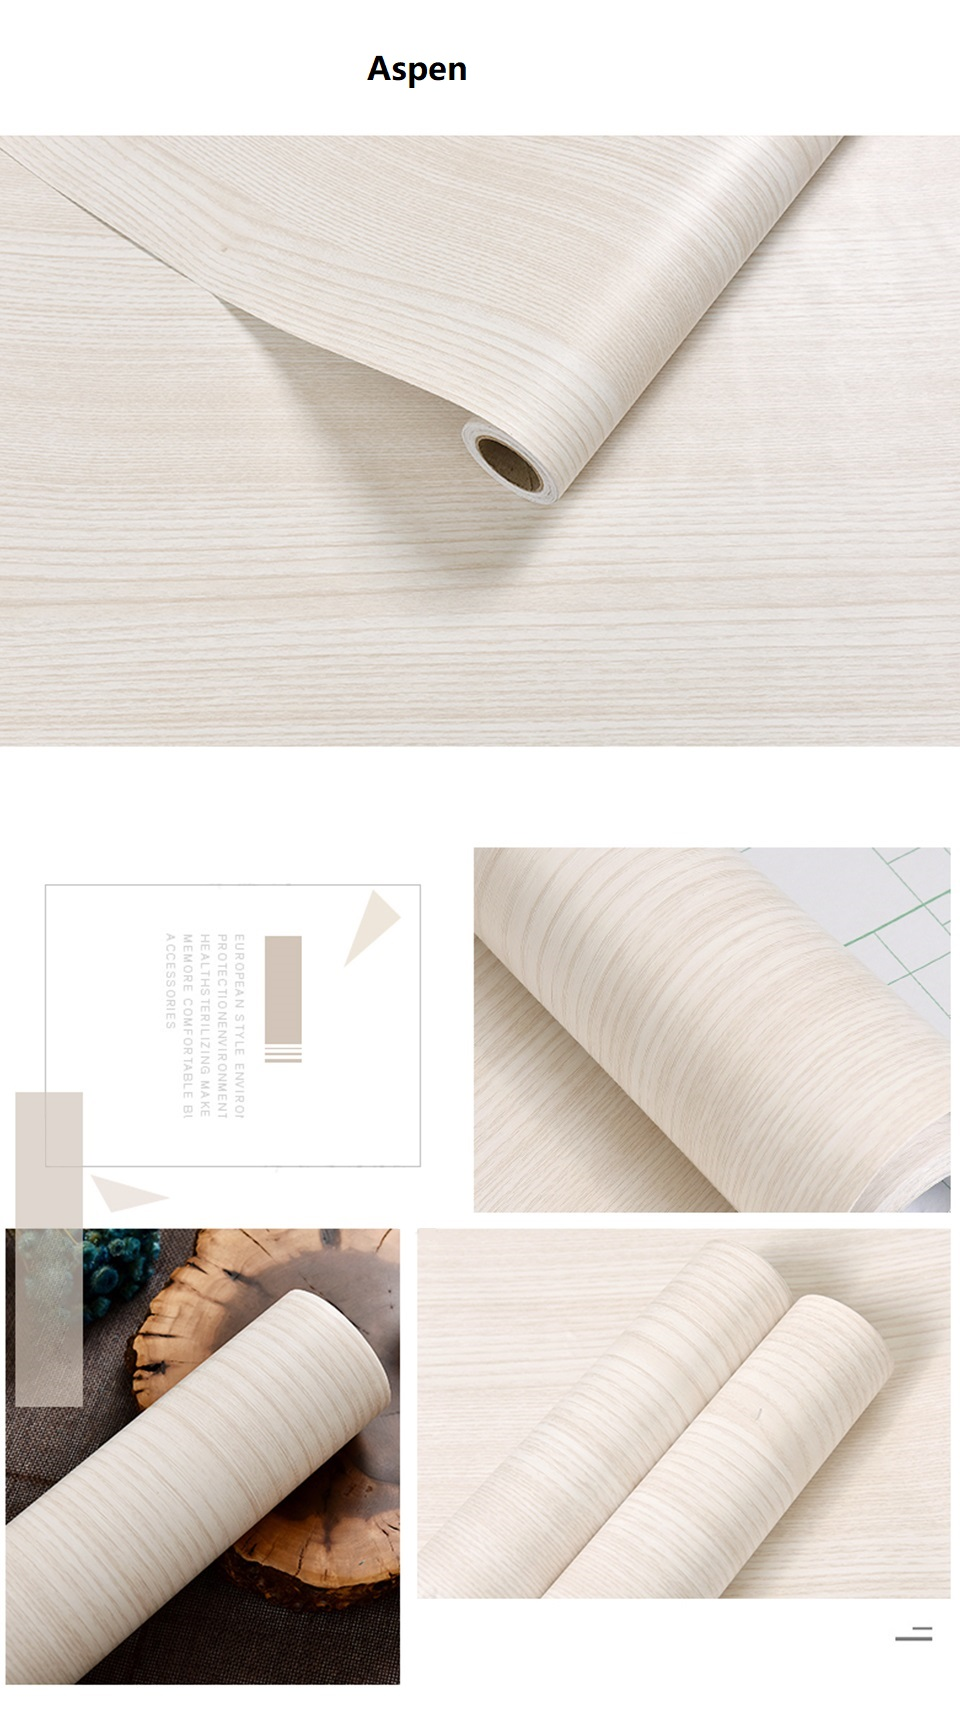 PVC Vinyl Wood Grain Contact Paper for Kitchen Cabinets Table Sticker Waterproof Self adhesive Wallpaper Phone Case Stickers HTB1PNNIcm8YBeNkSnb4q6yevFXau